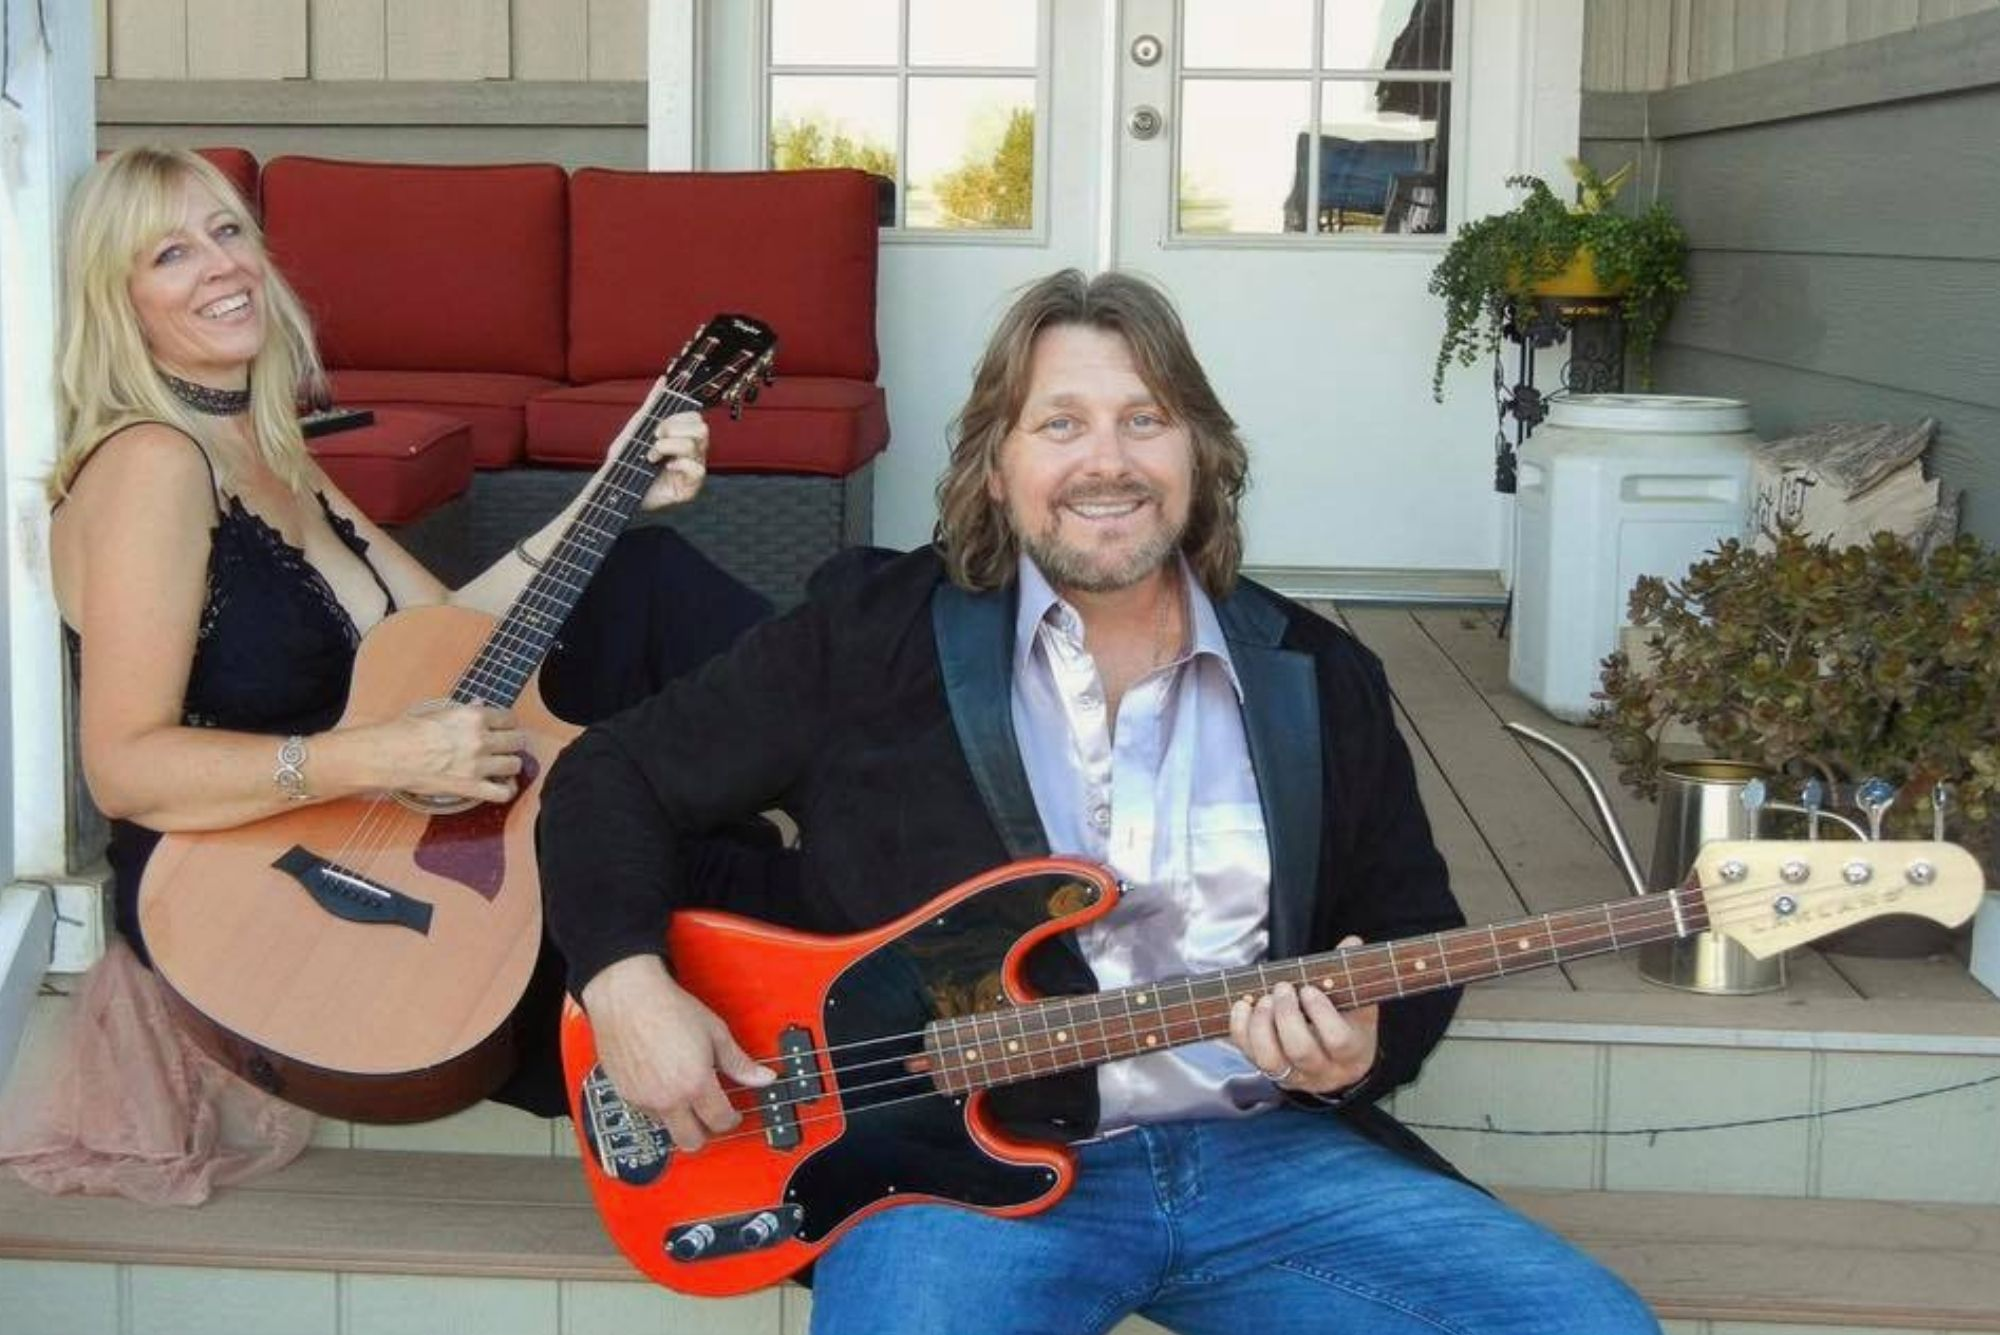 Sweet Taunts is performing at Viaggio Winery